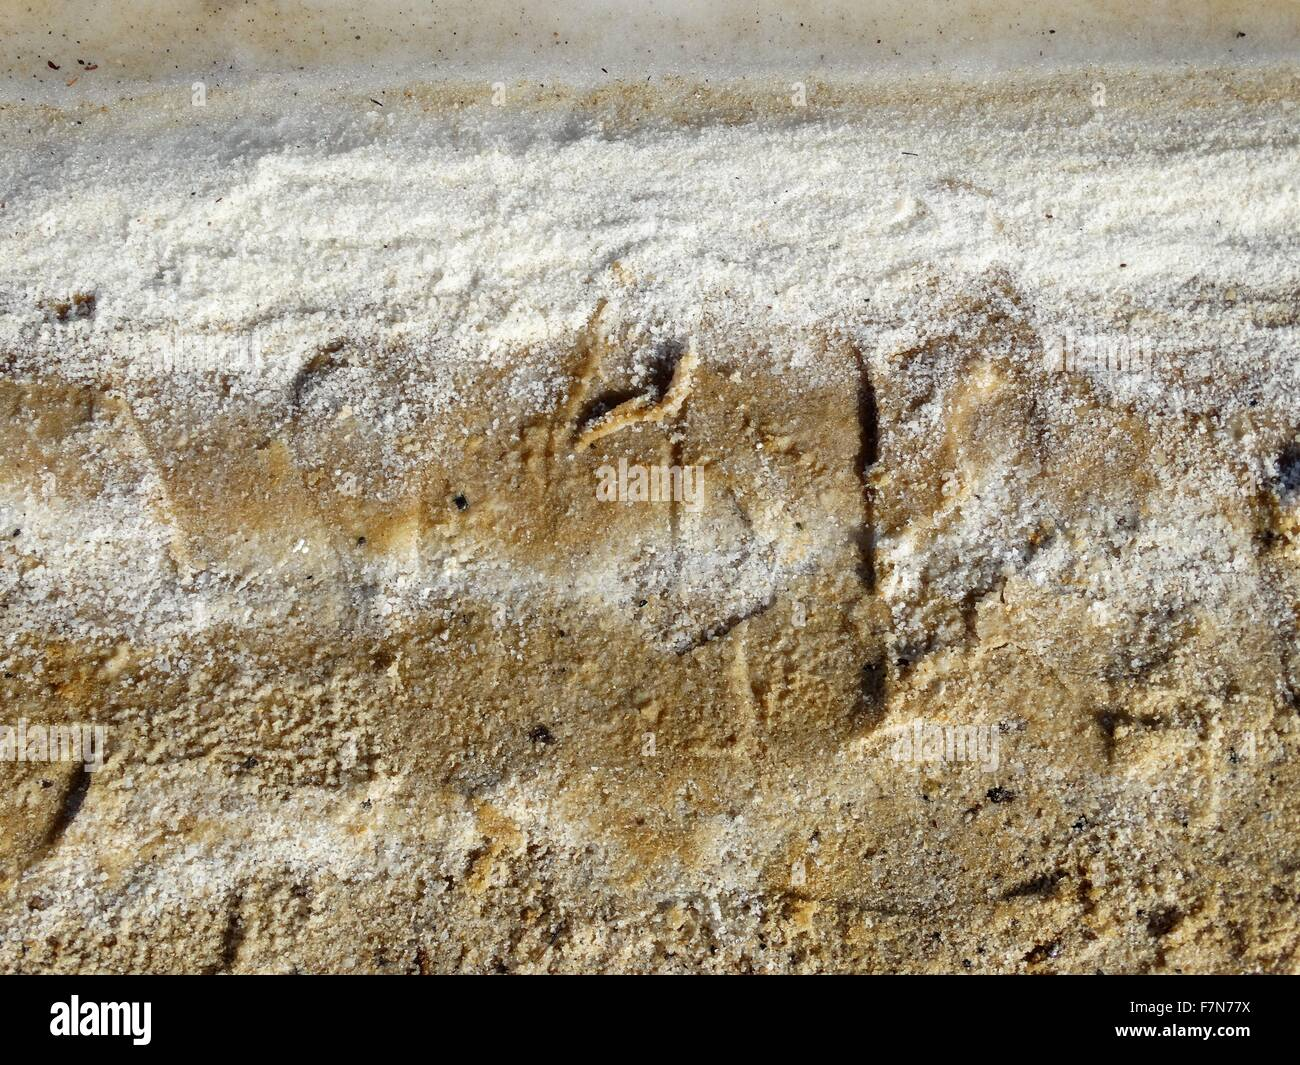 Dead sea salt deposits; Israel 2014 - Stock Image